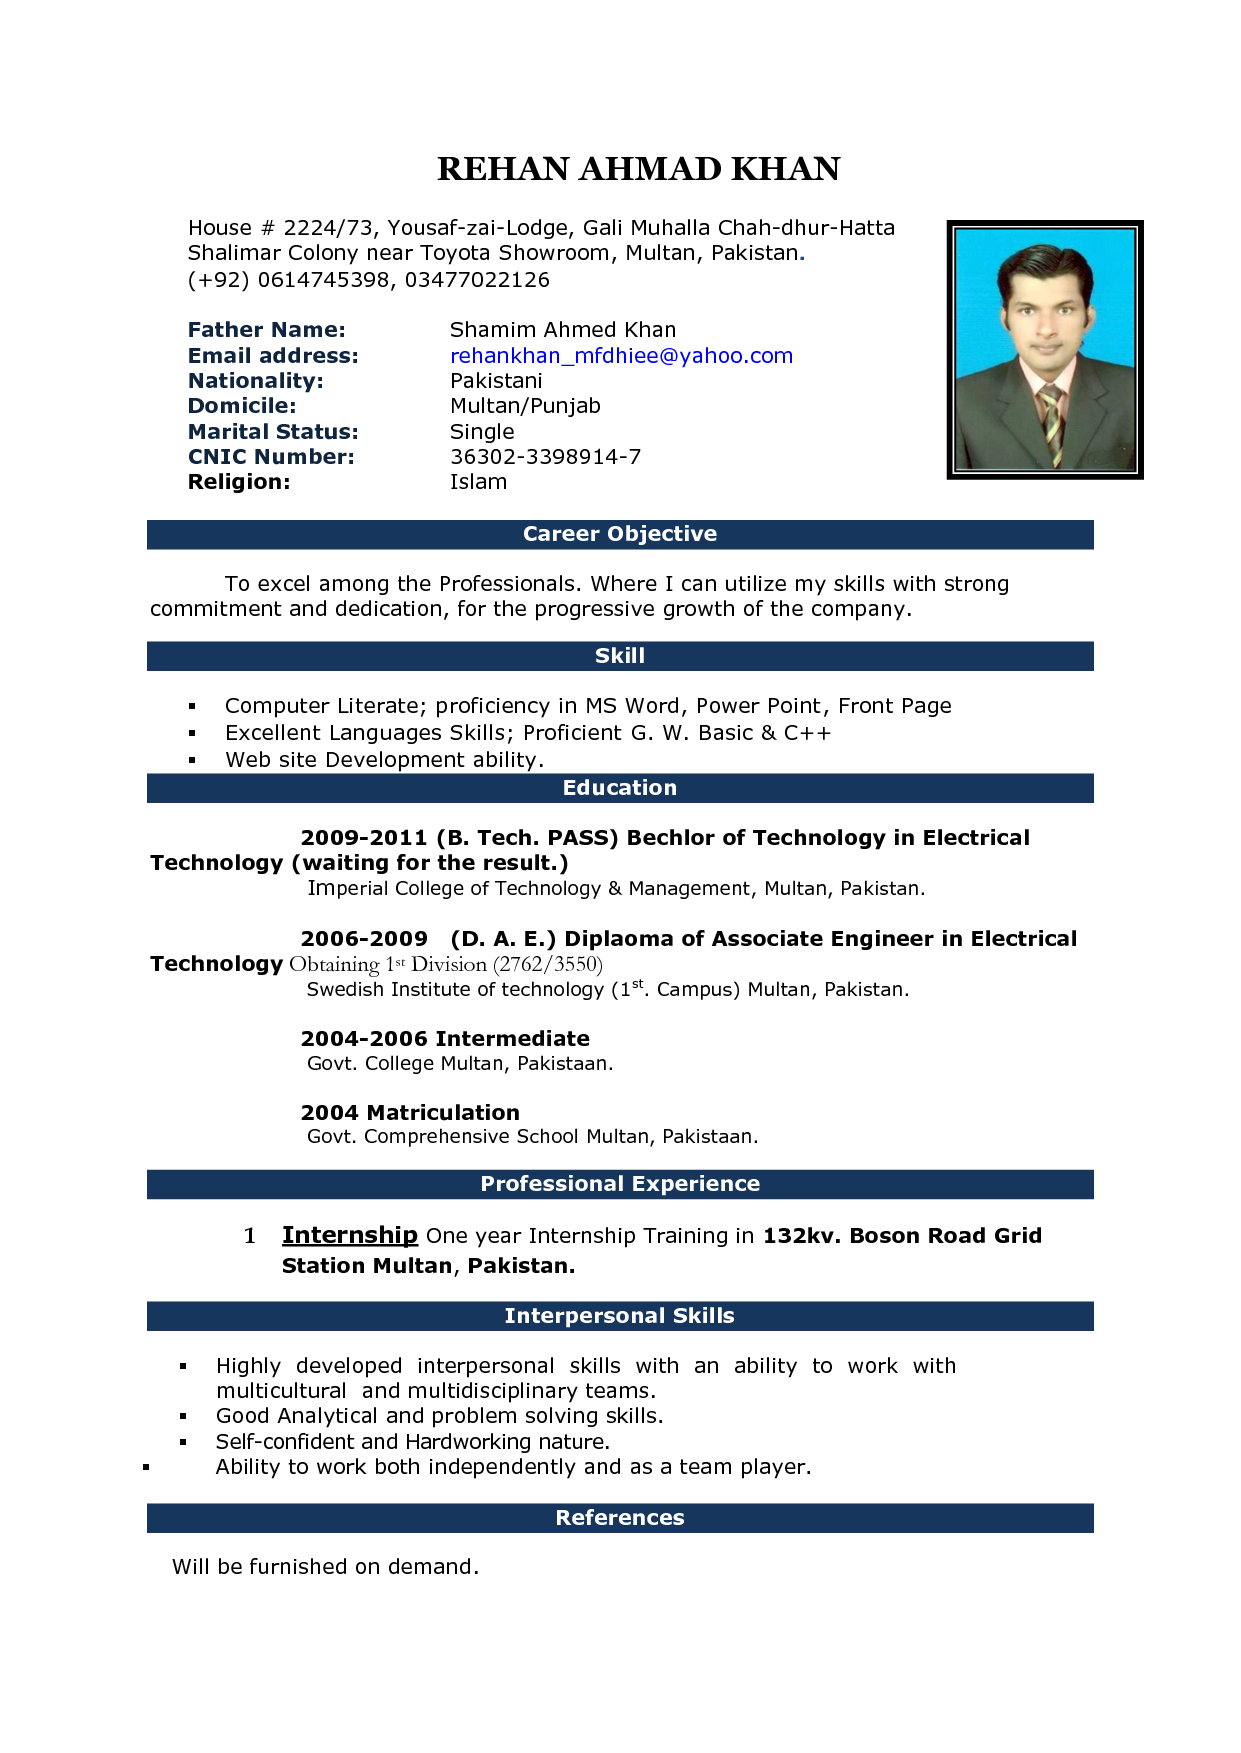 Latest Resume Format In Ms Word For Freshers Wwwomoalata Template 8